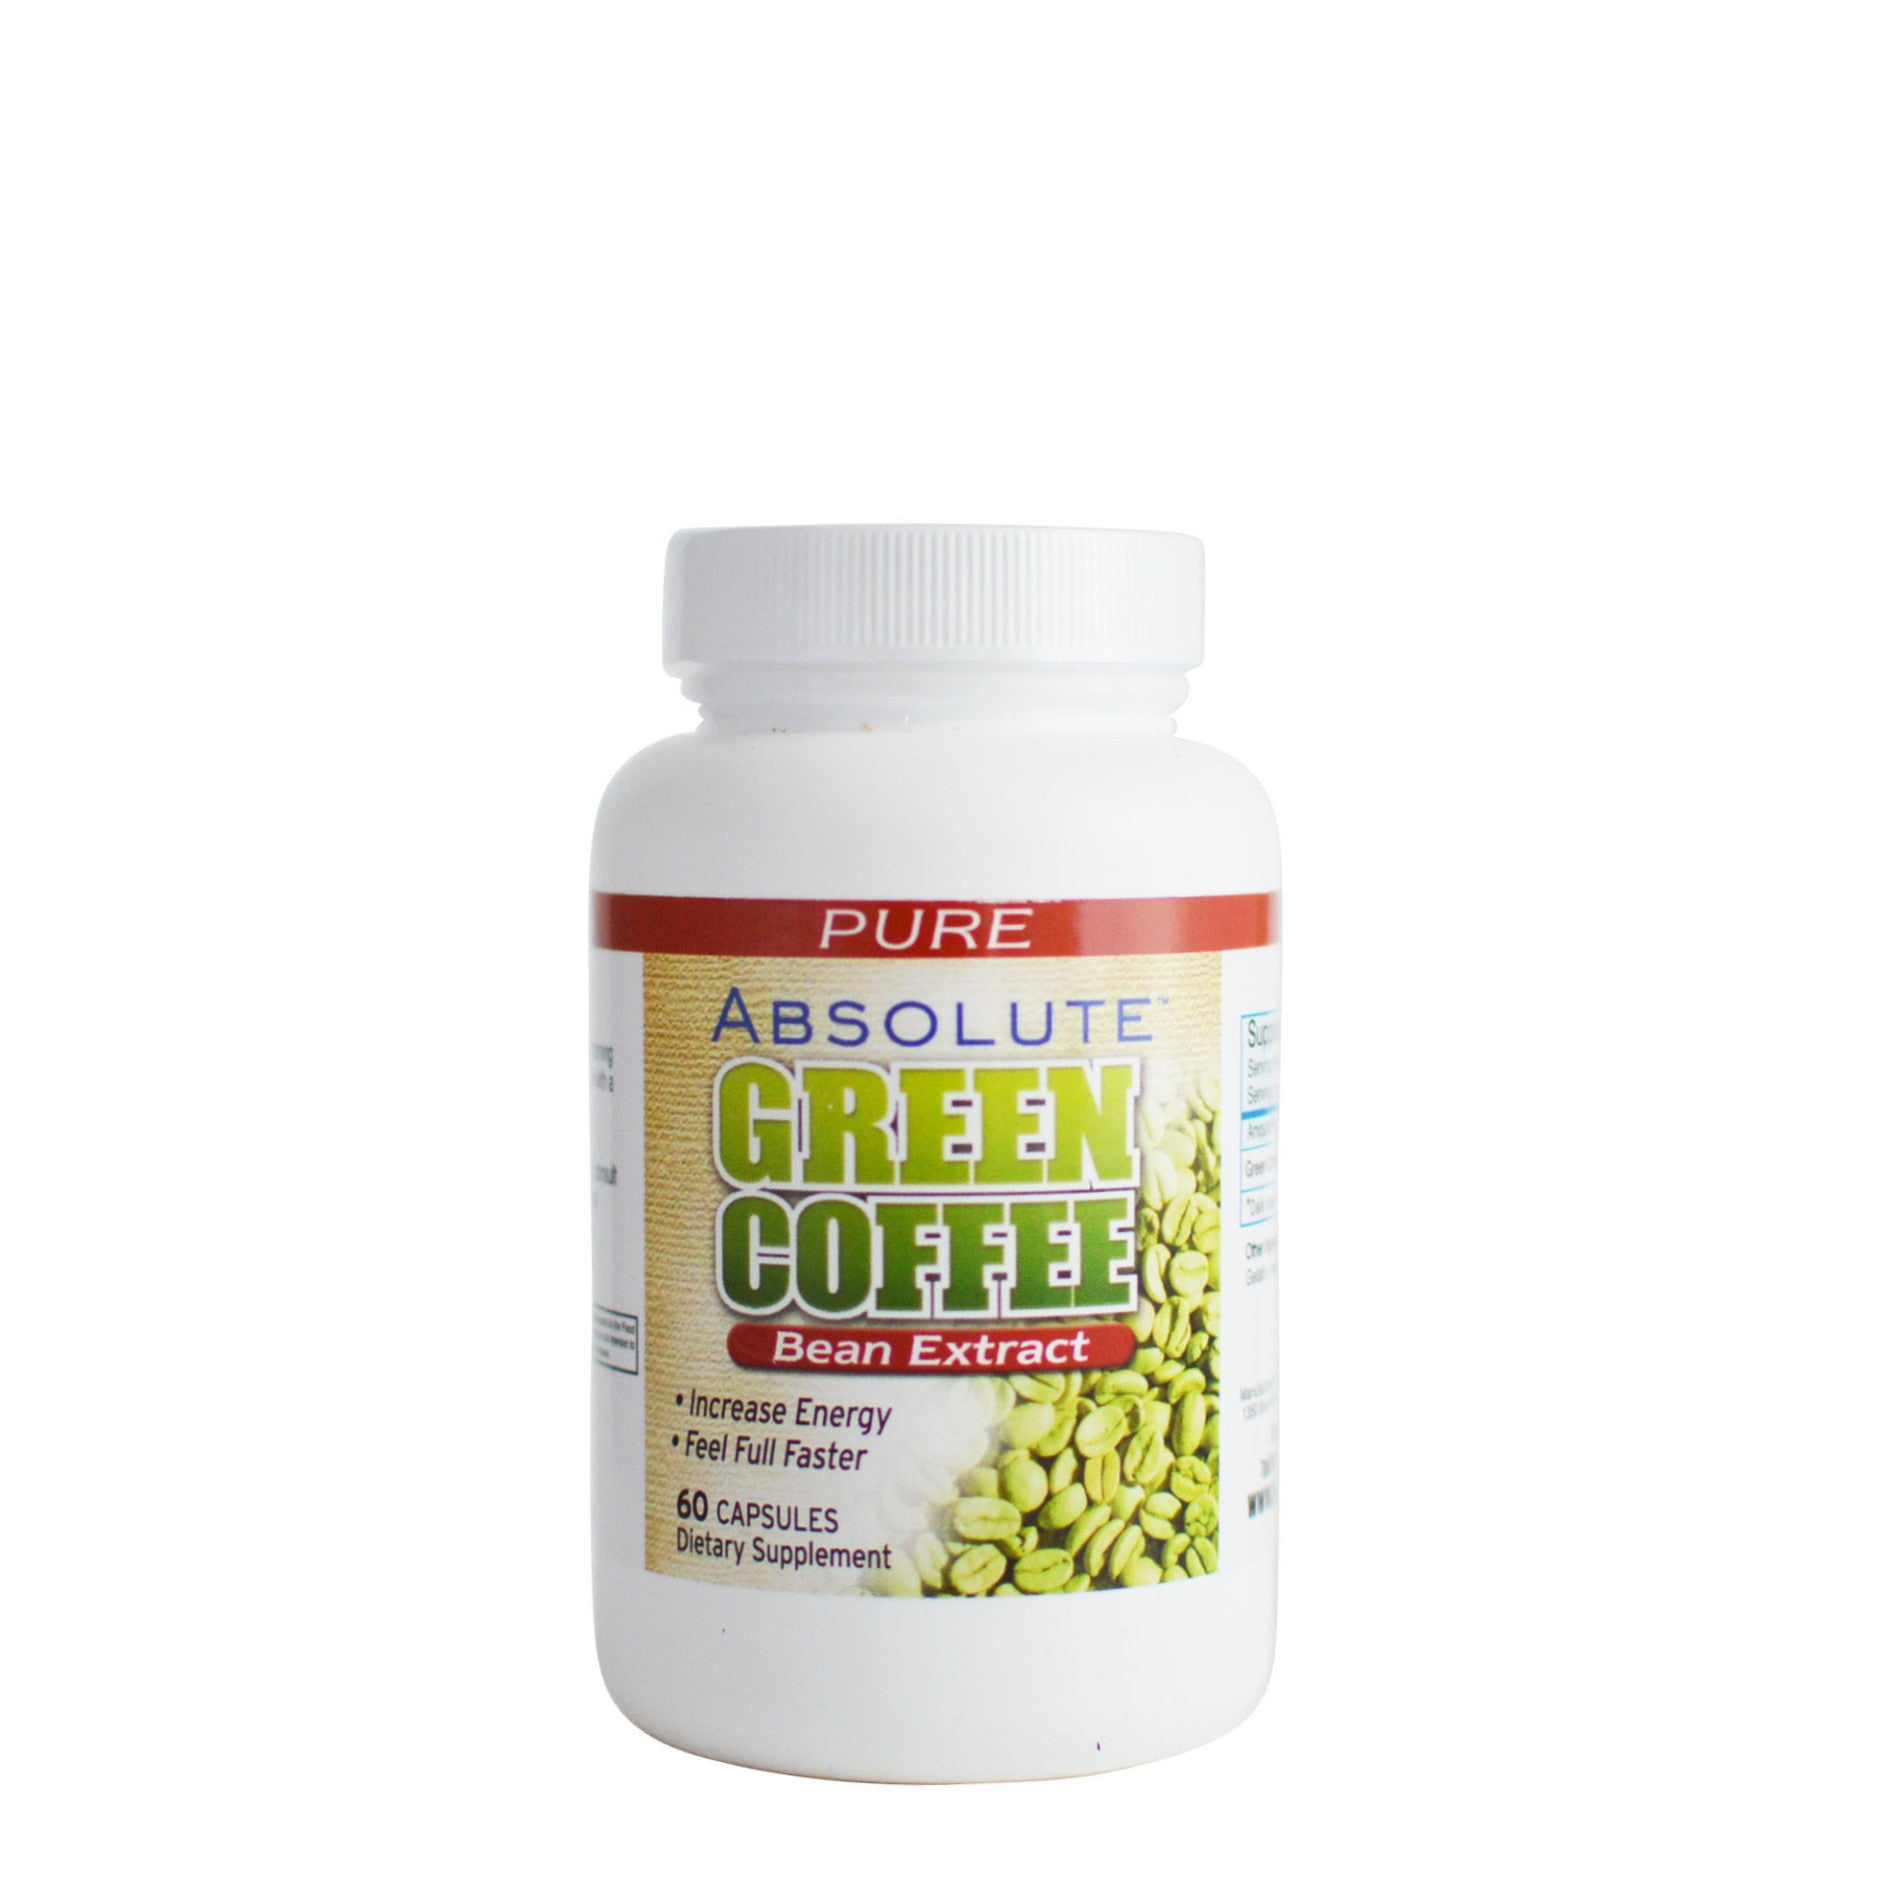 Svetol Green Coffee Bean Extract Green Coffee Bean Extract Tablets Capsules Absolute Nutrition